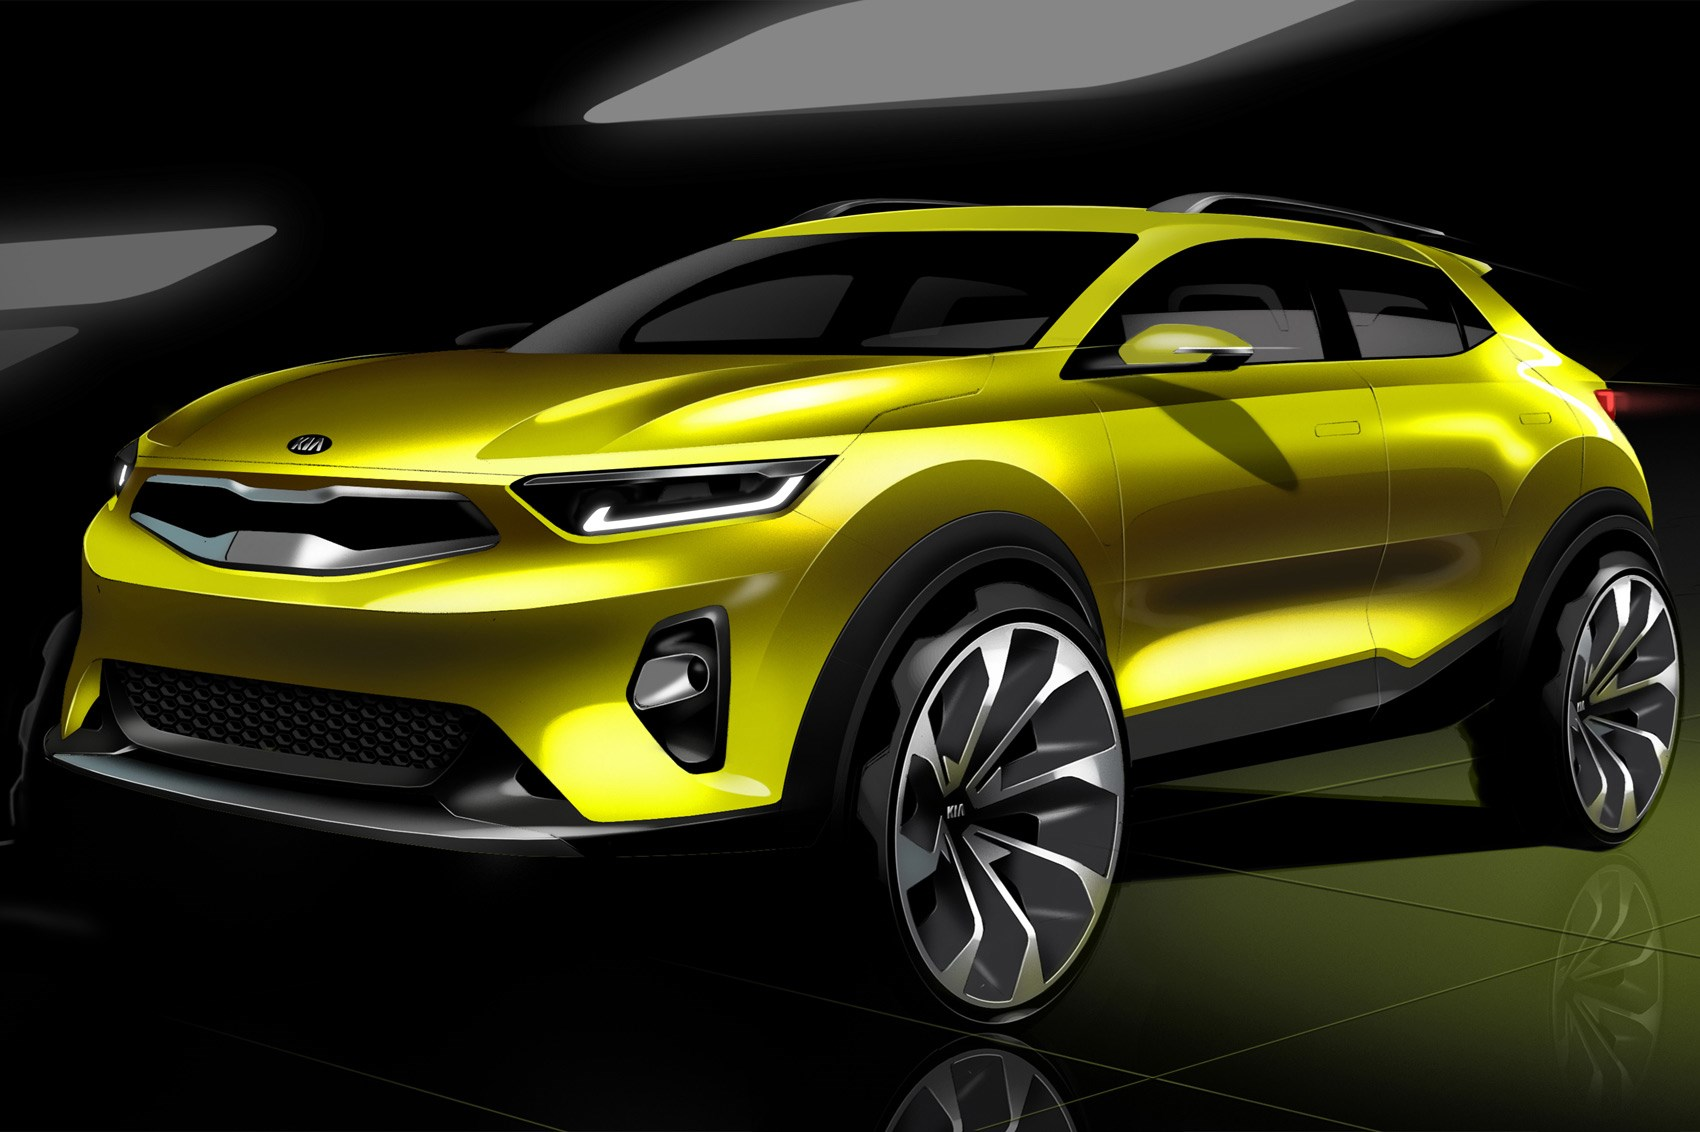 Kia unveils eye-catching new Stonic